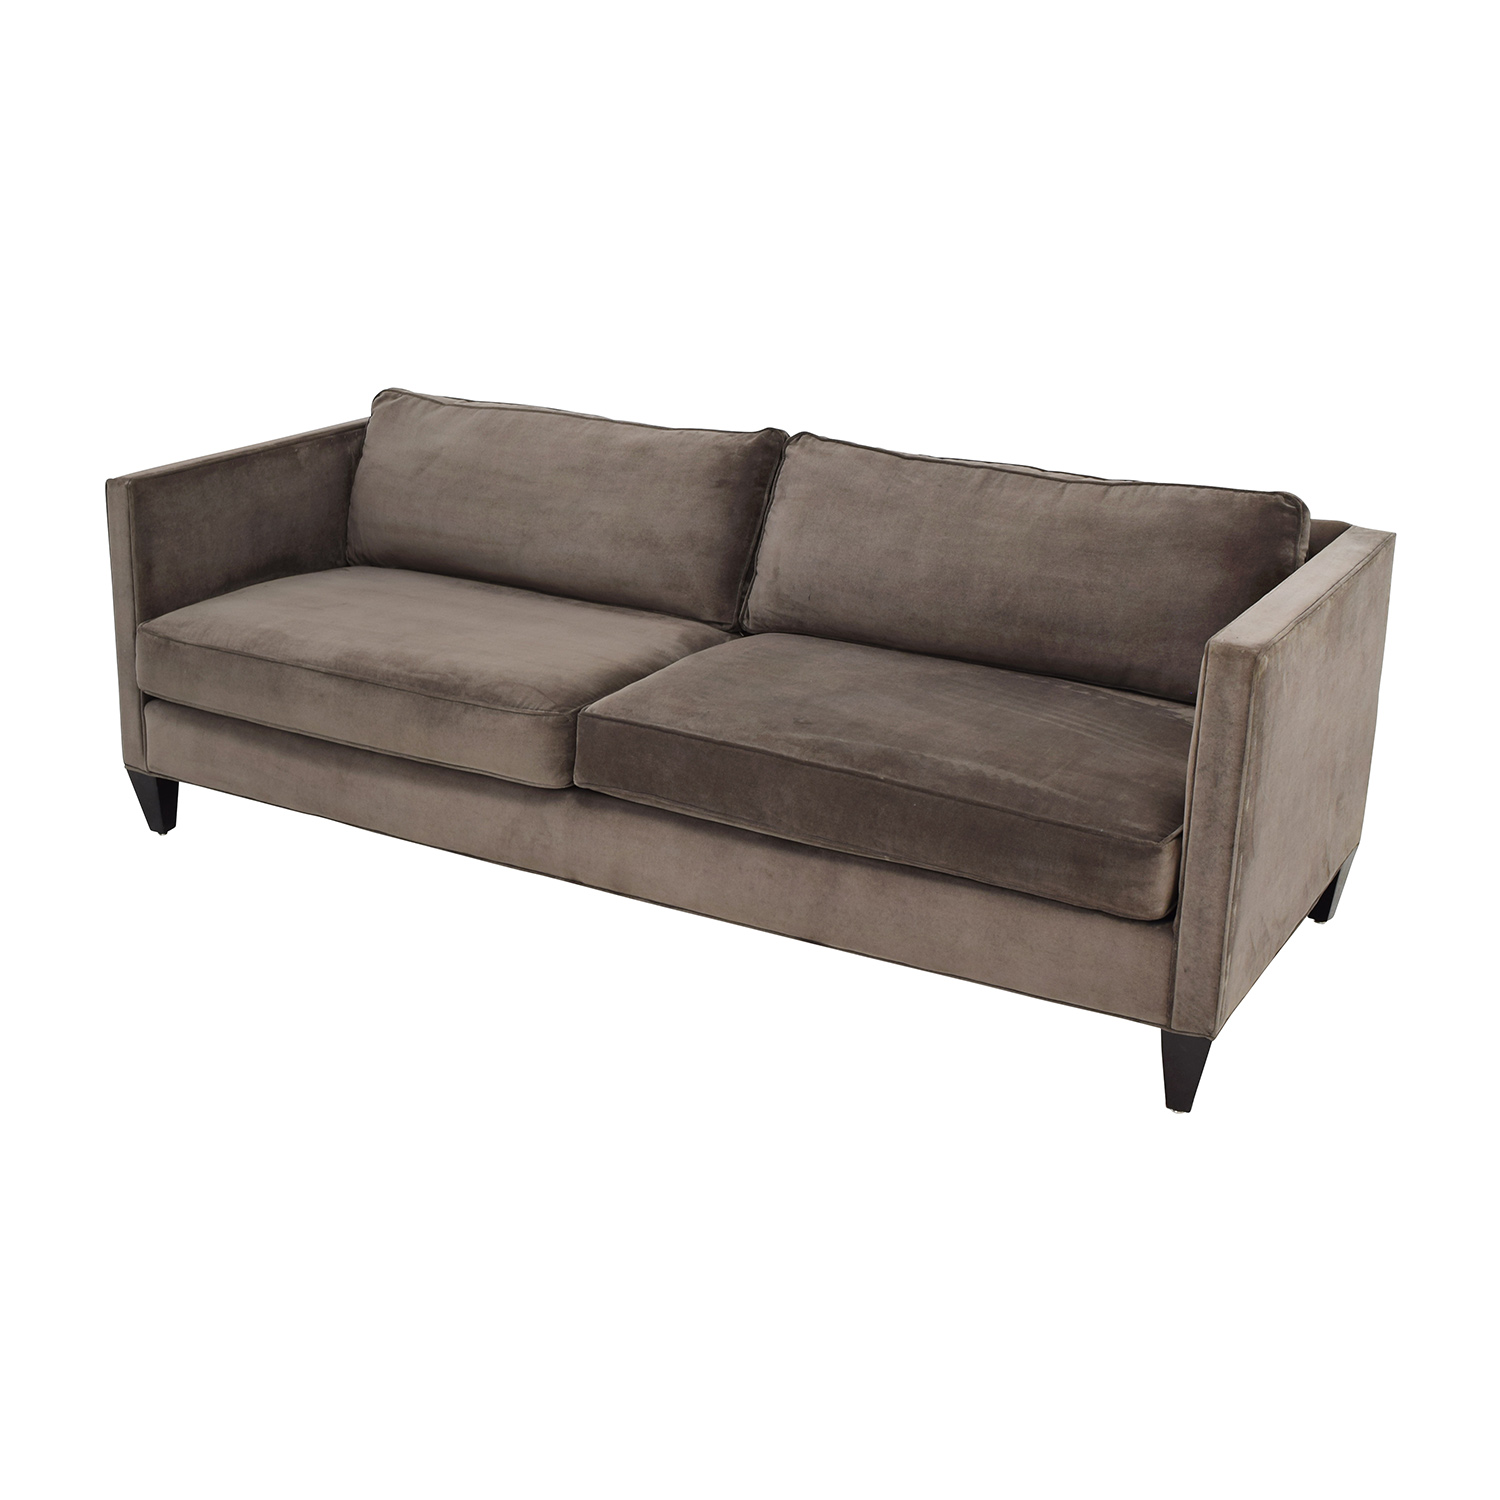 furniture row sofa black houndstooth 77 off rowe mitchell brown two